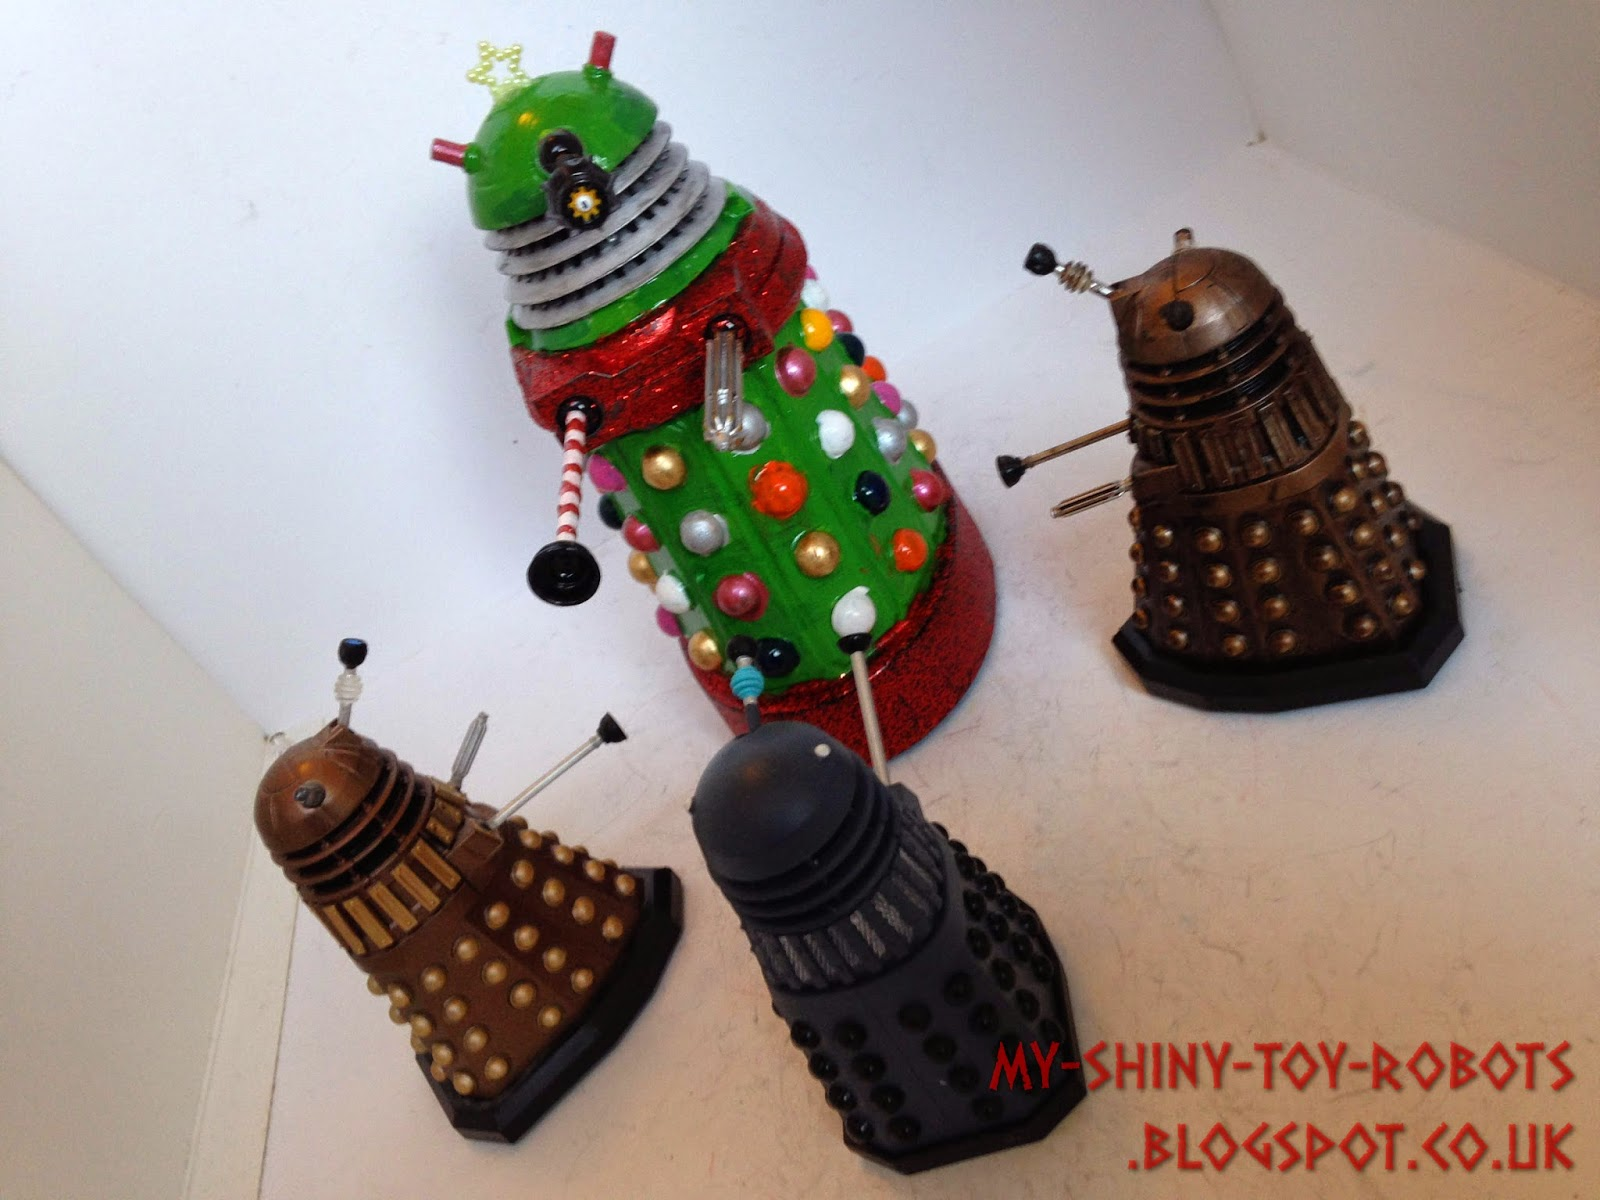 The Daleks gather around the tree